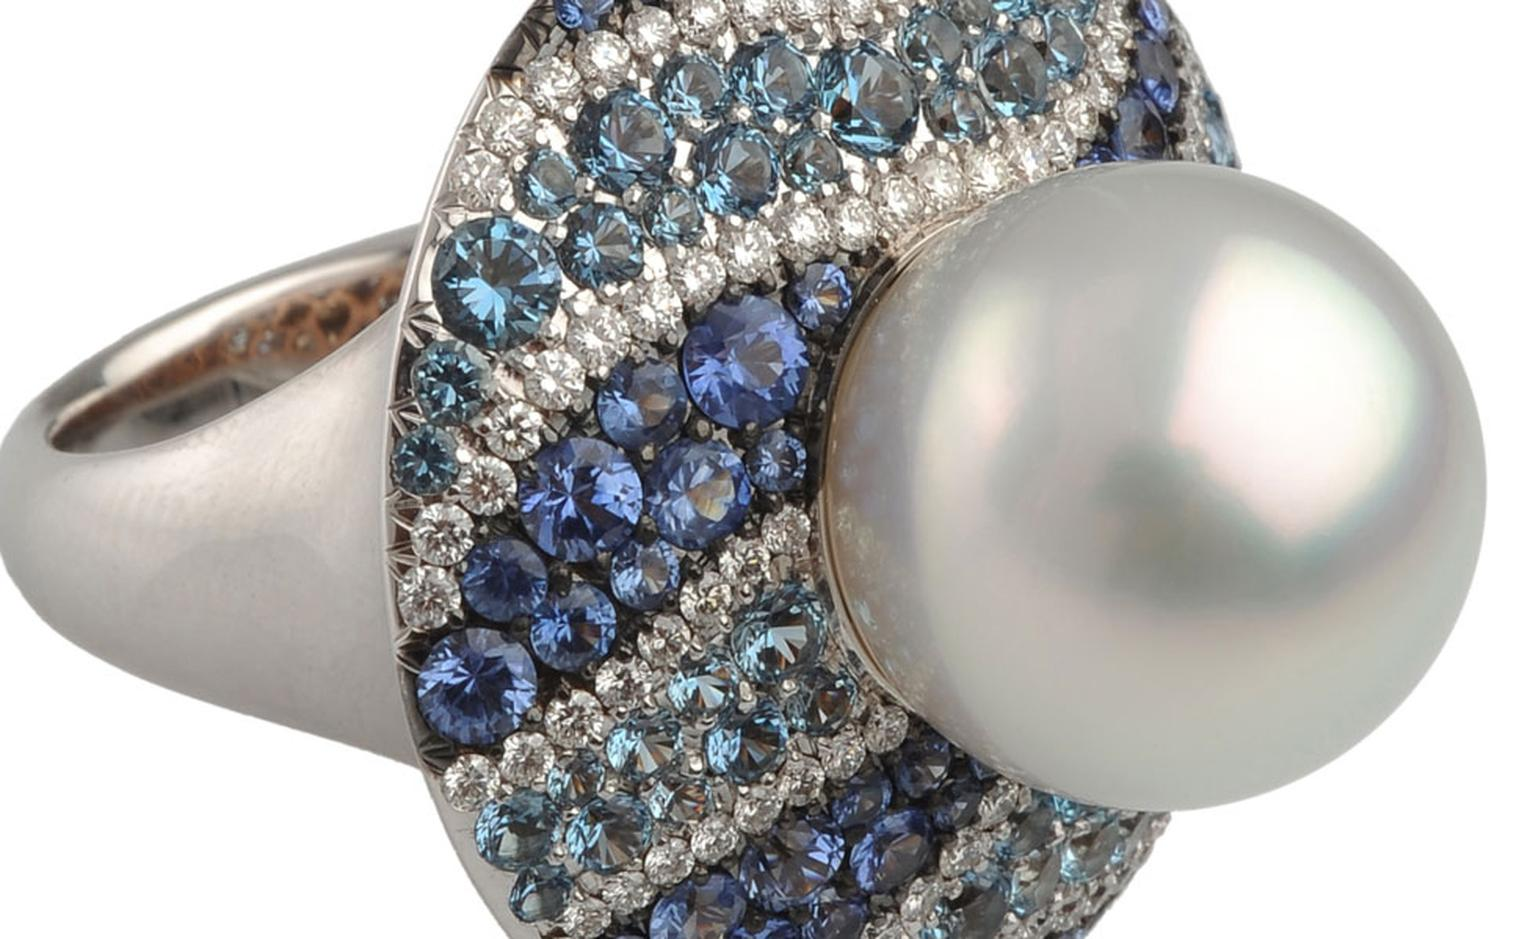 Close up of the Autore, Fire & Ice Iceberg white gold, South Sea pearl, diamond, blue sapphire and aquamarine ring. I love the waves of different shades of blue that ripple alongside the lustre of the pearl. $25,500 AUD